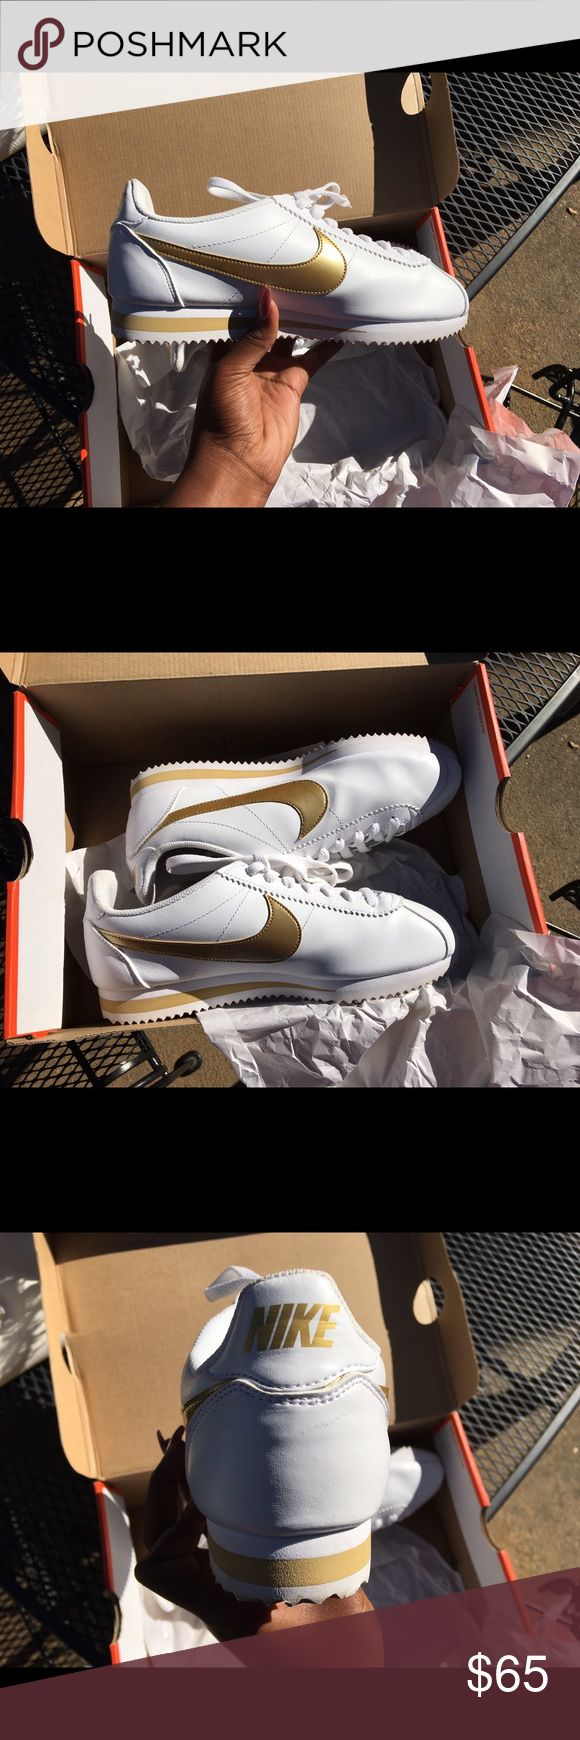 White and Gold Women Cortez (9) White and Gold Cortez fairly new, only worn 2 times and still in box. #Nike #Cortez #white #gold #new #clean #fashion #sneakers Nike Shoes Sneakers